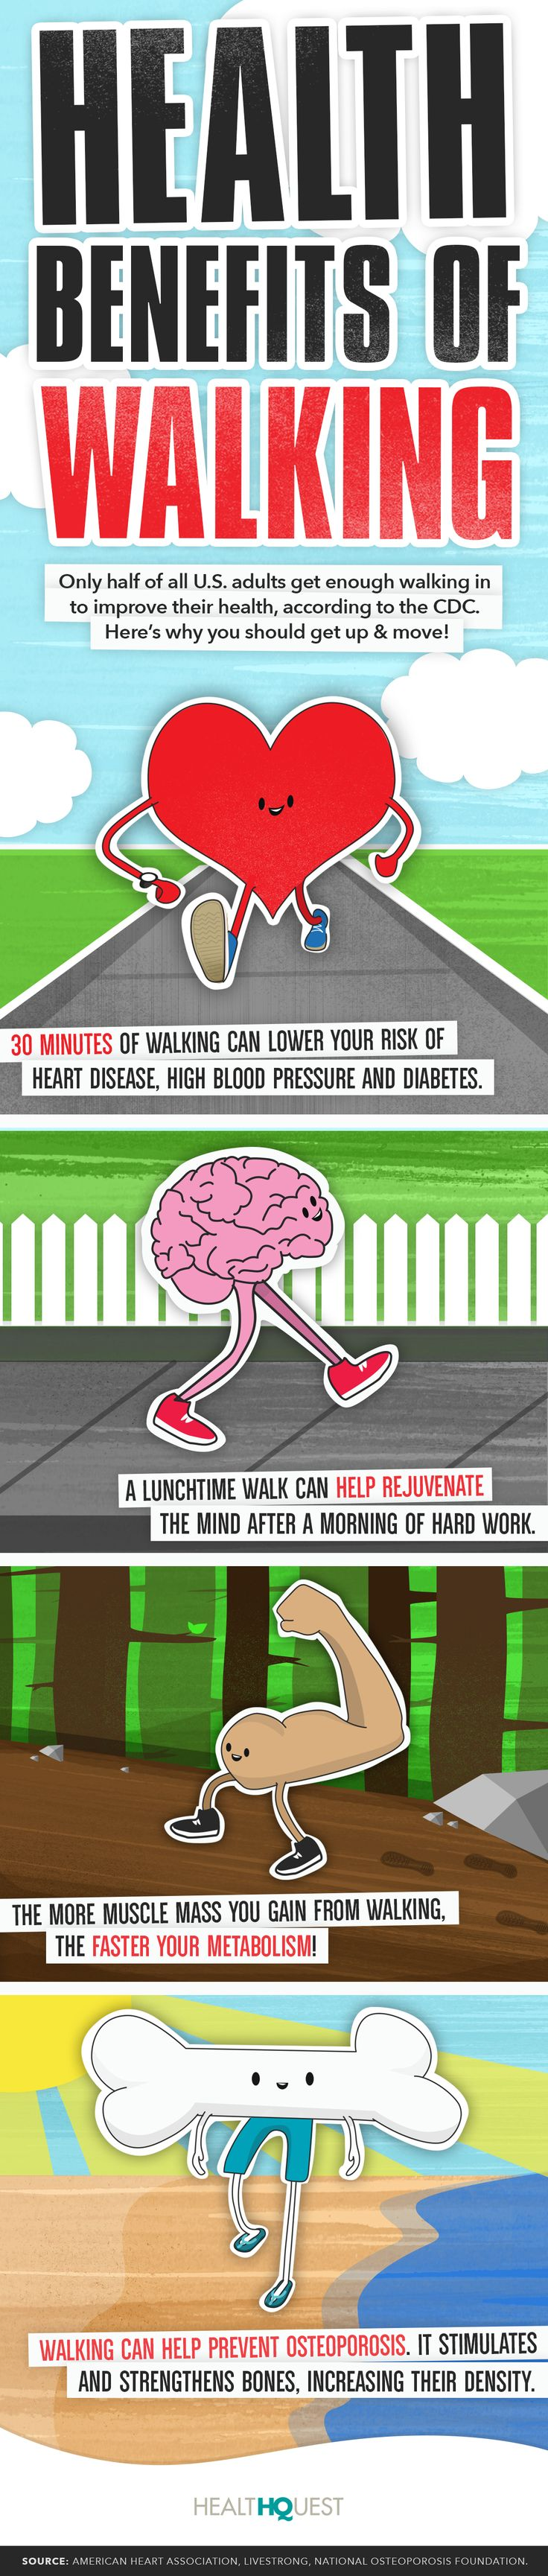 Learn more about the health benefits of walking.